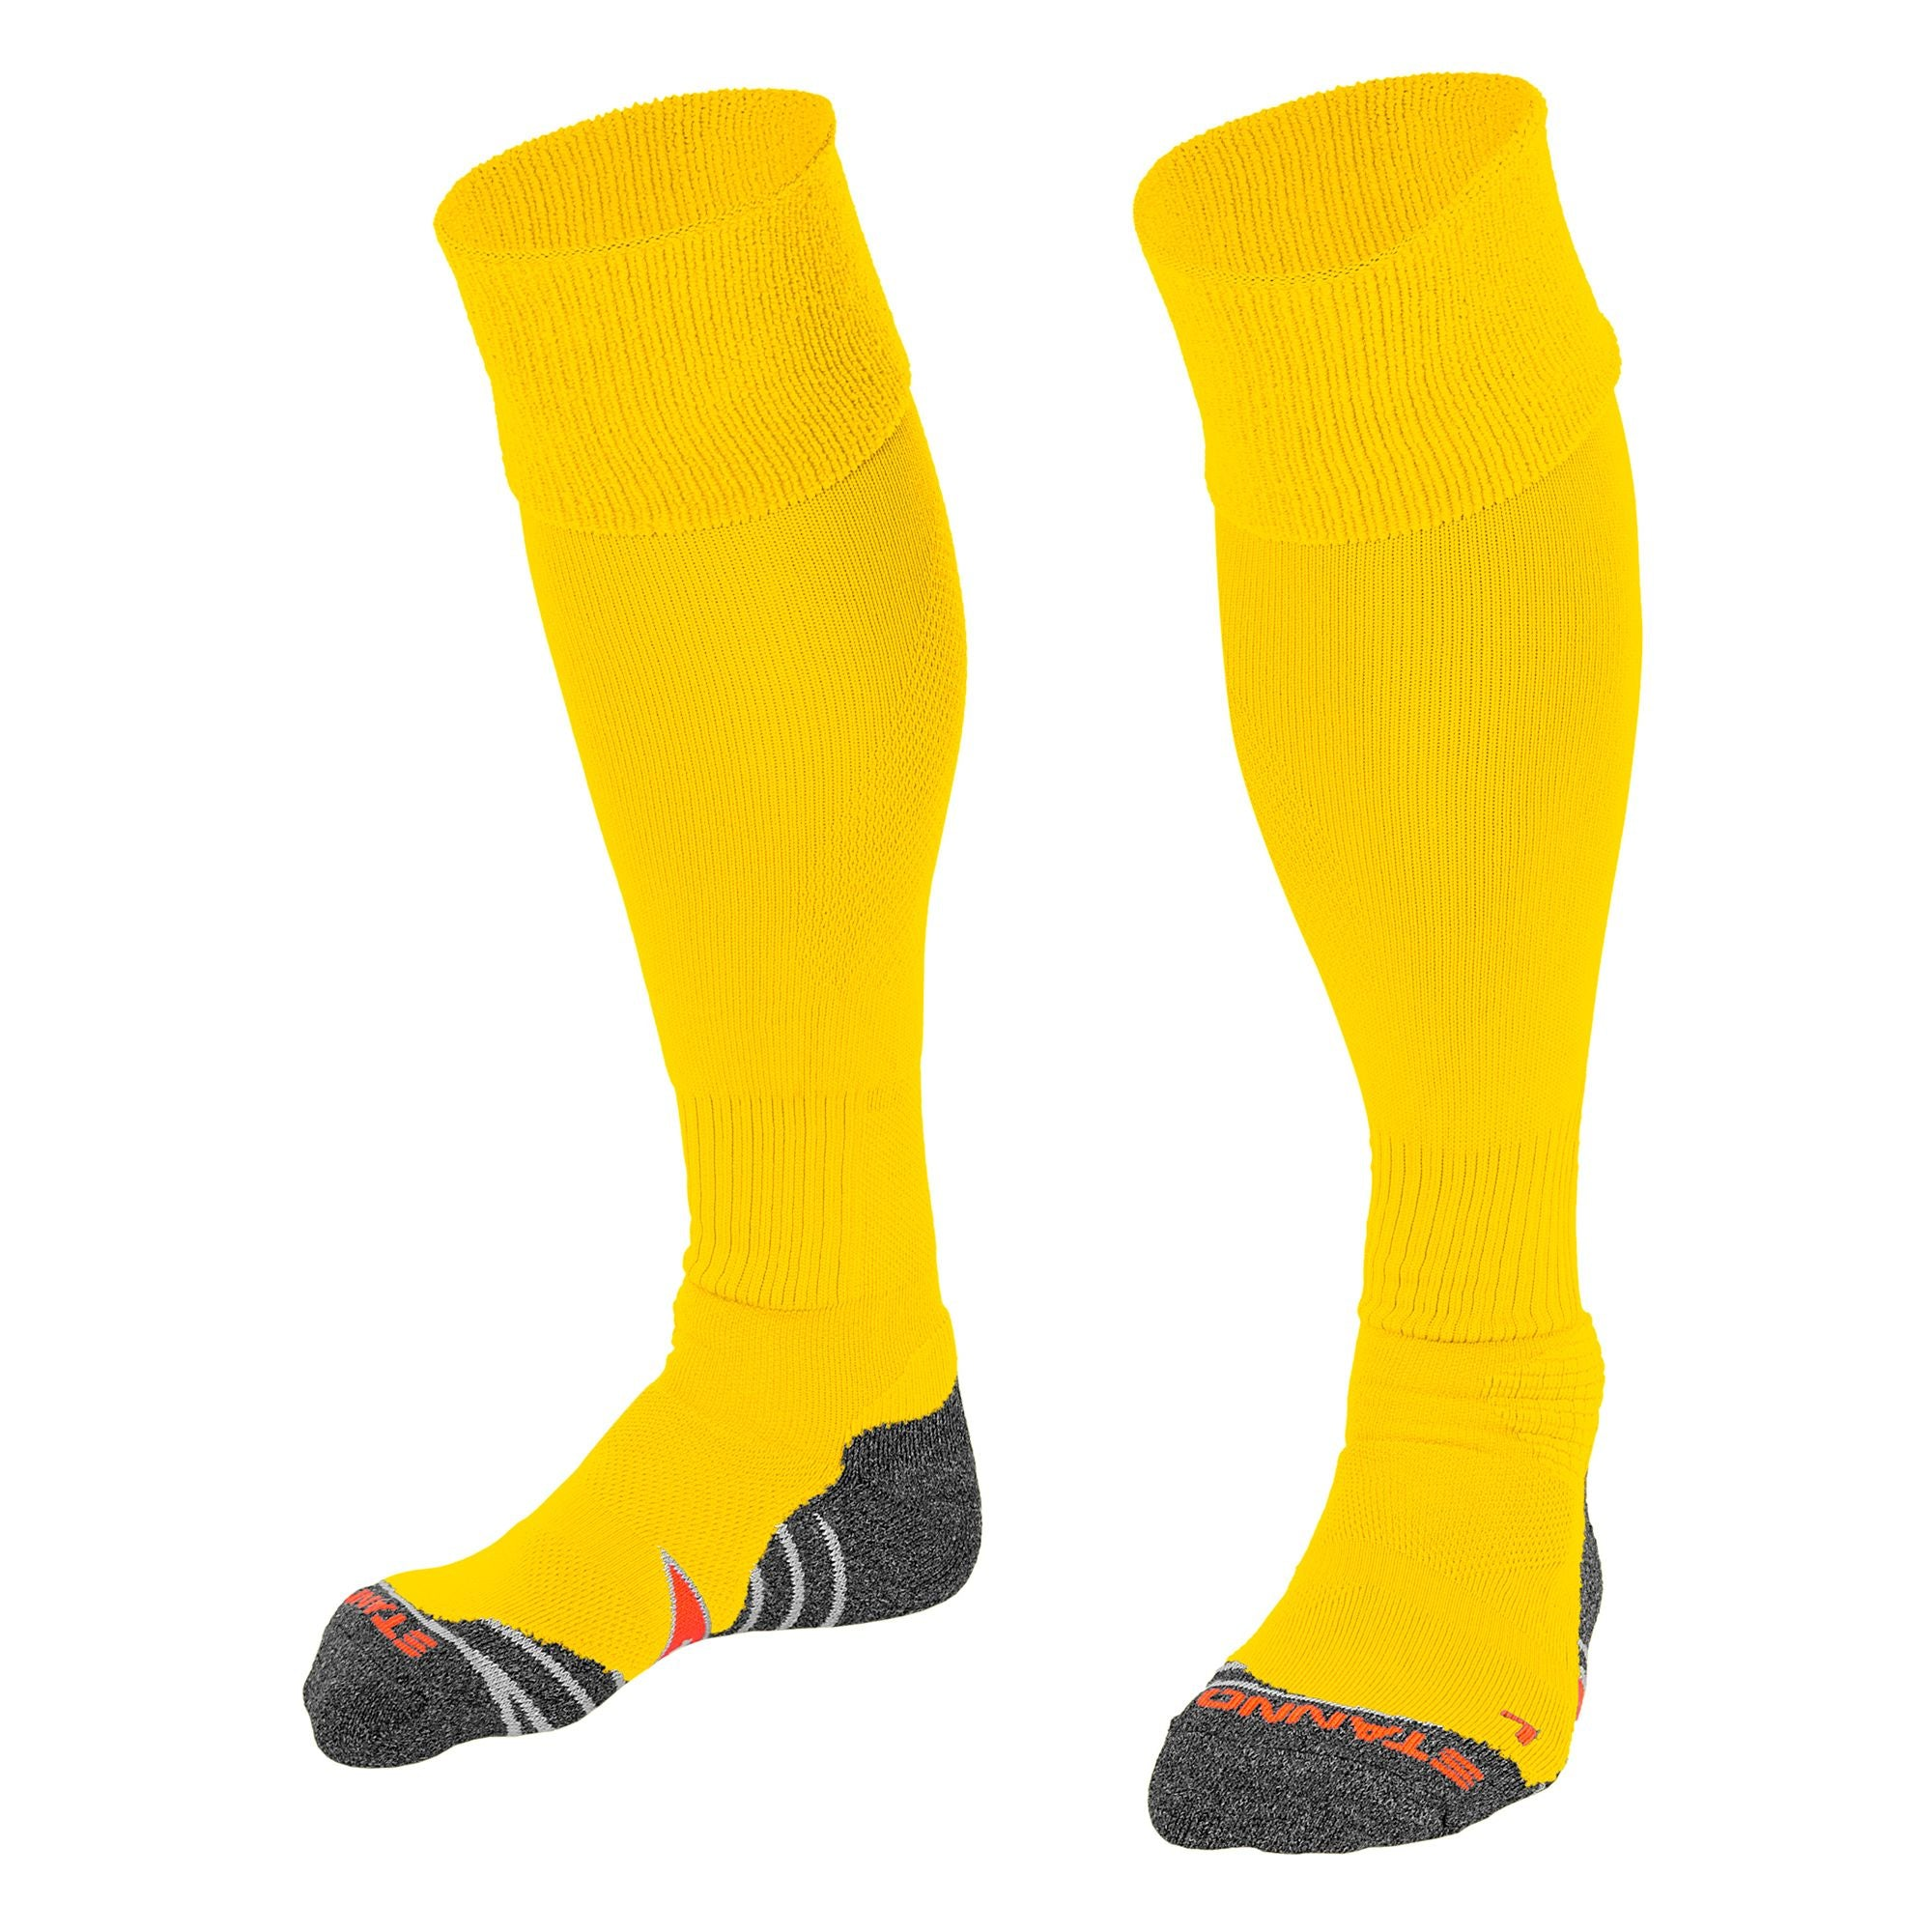 Stanno Uni Sock II football sock in yellow with grey, white and orange sole